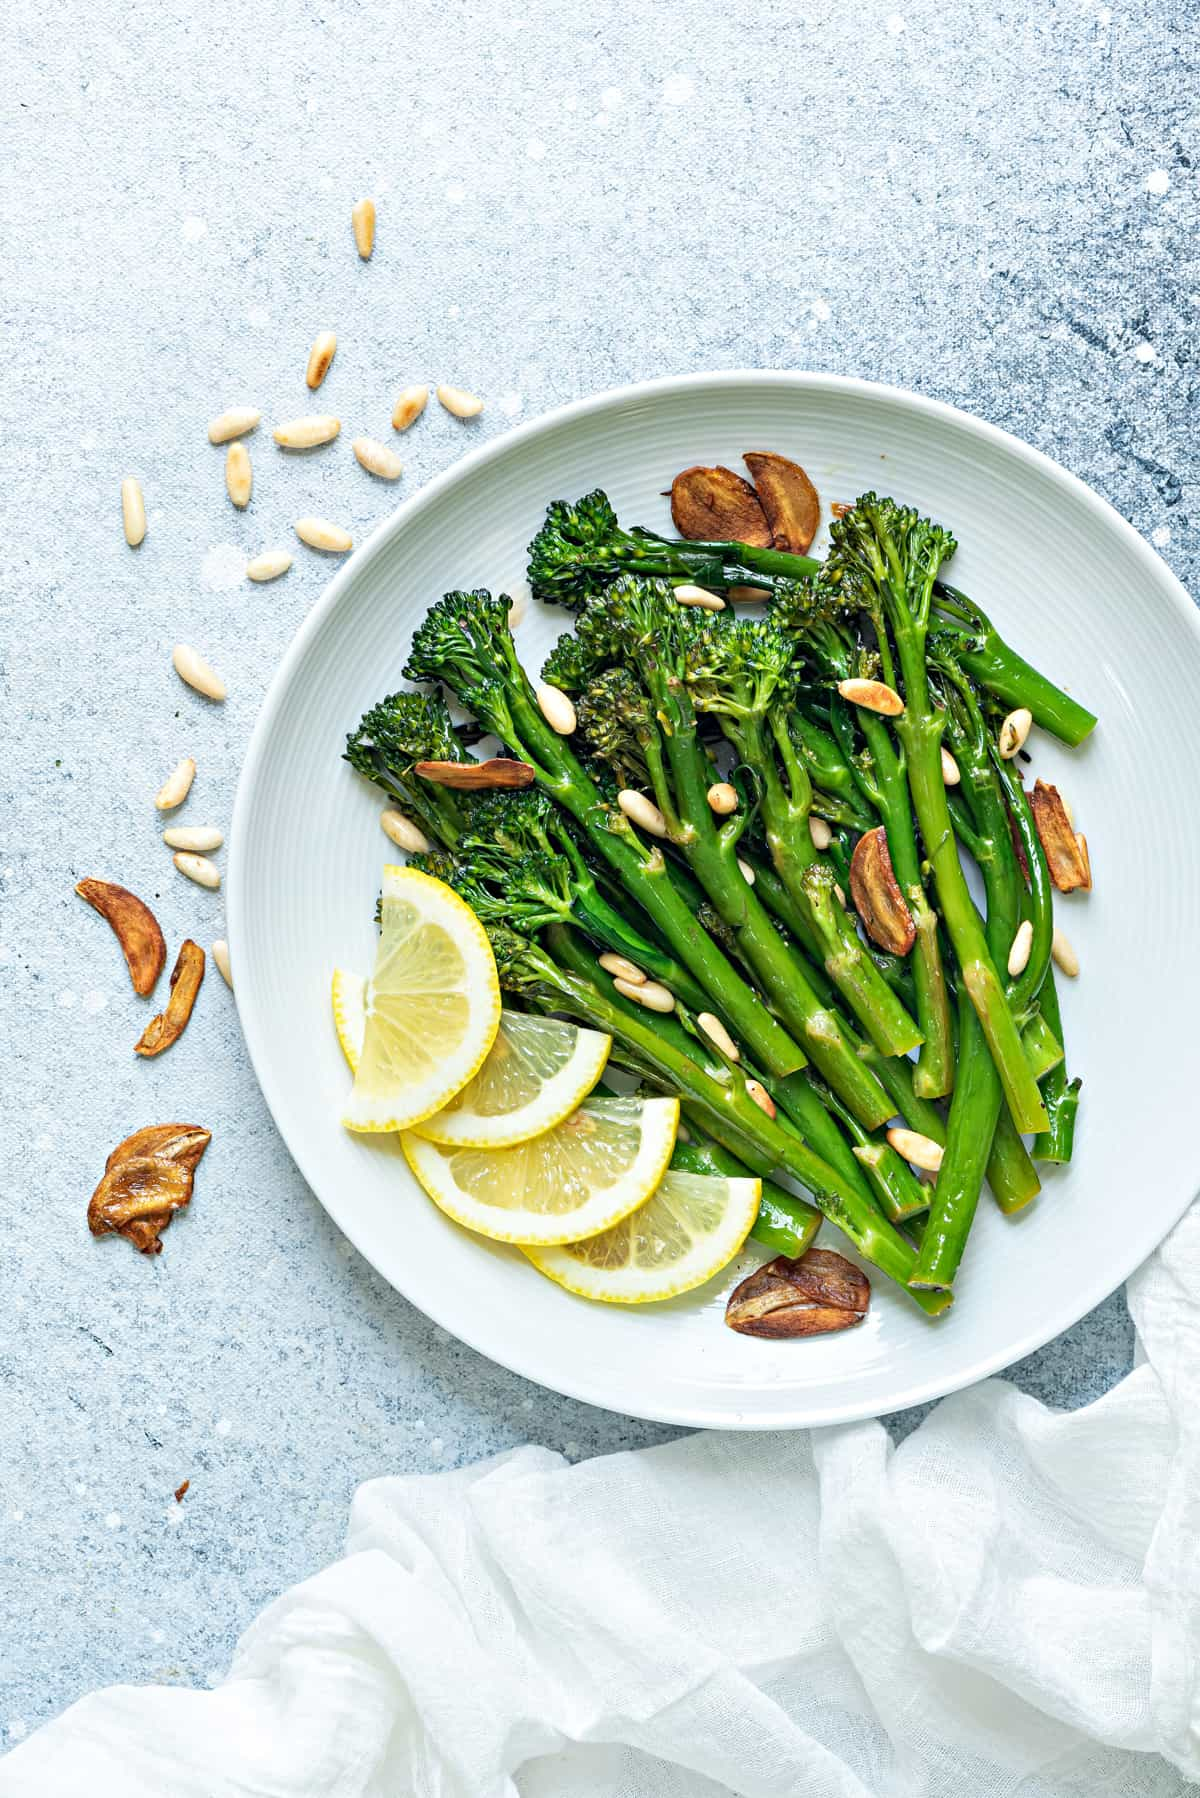 a serving platter of sautéed broccolini with fresh lemon slices, garlic chips and toasted pine nuts